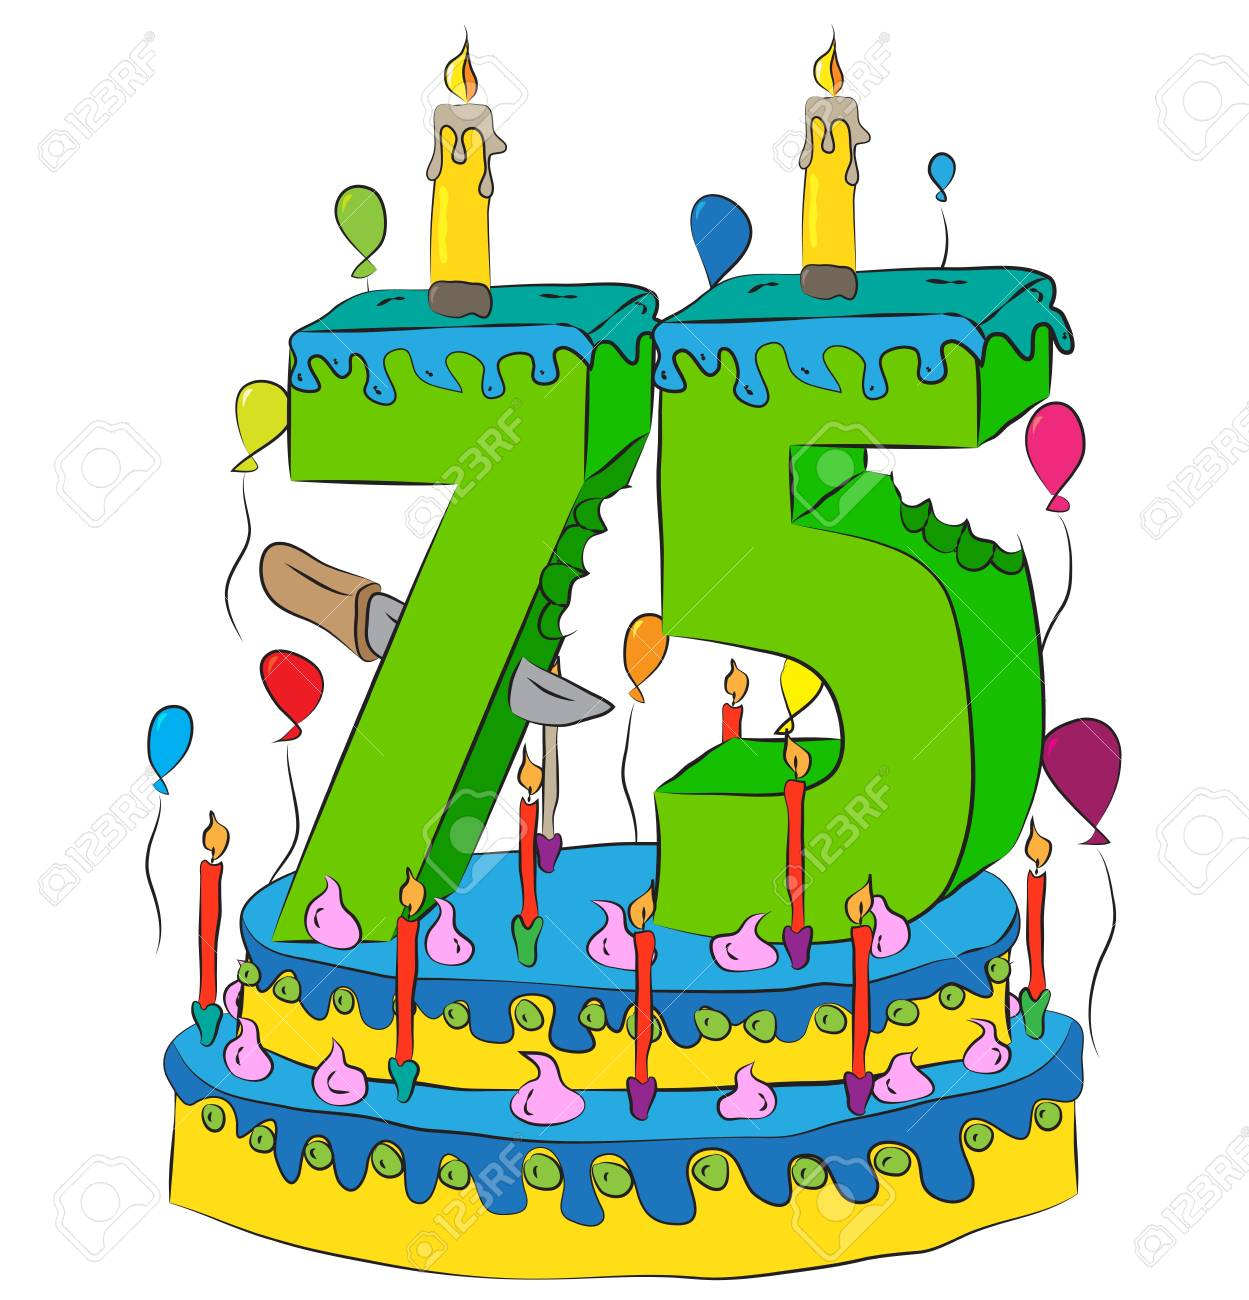 Swell 75 Birthday Cake With Number Seventy Five Candle Celebrating Funny Birthday Cards Online Elaedamsfinfo